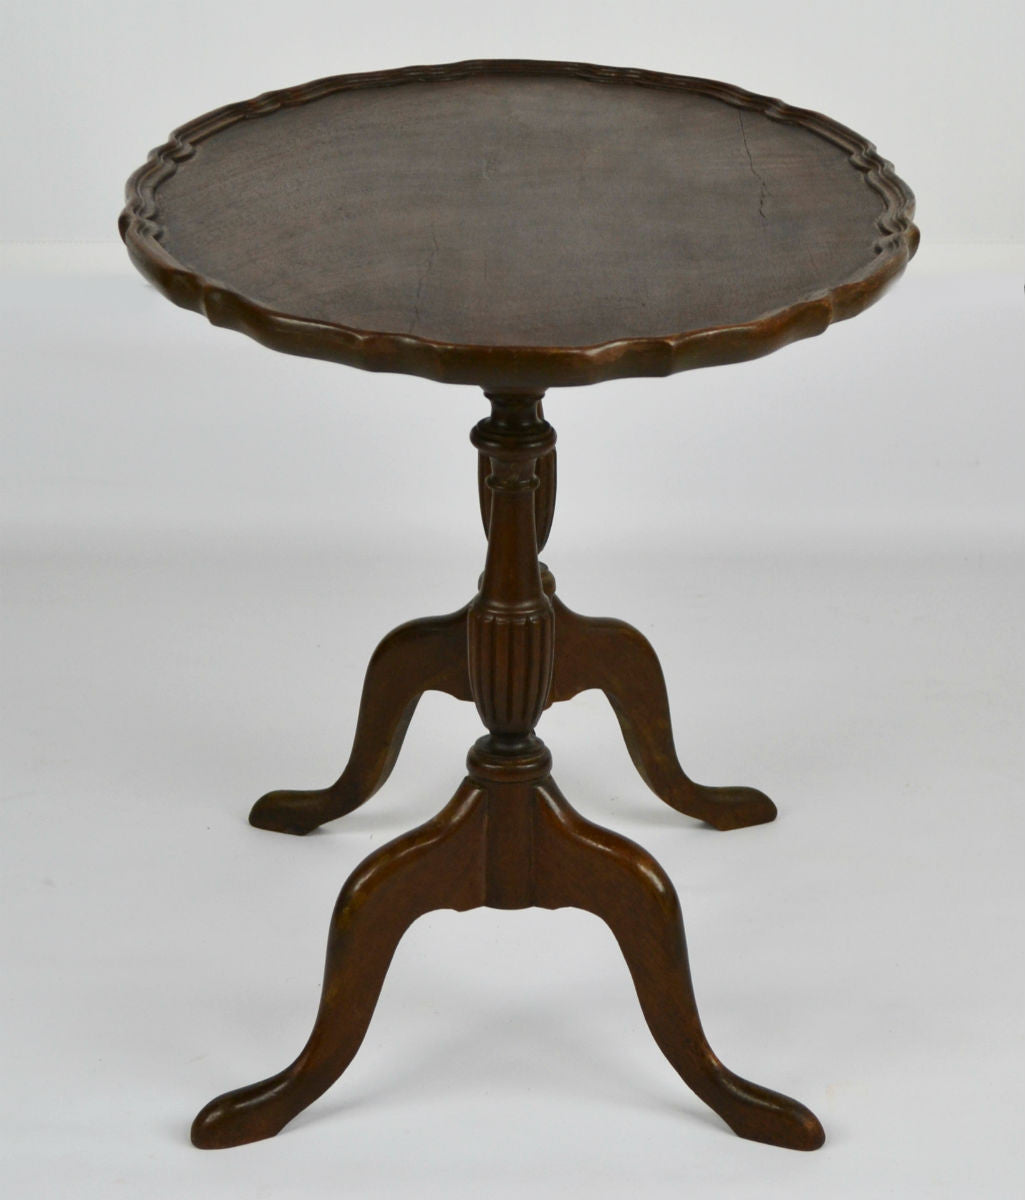 Oval Coffee Table Antique: Decorative Oval Coffee Table On Stretcher Base Vintage